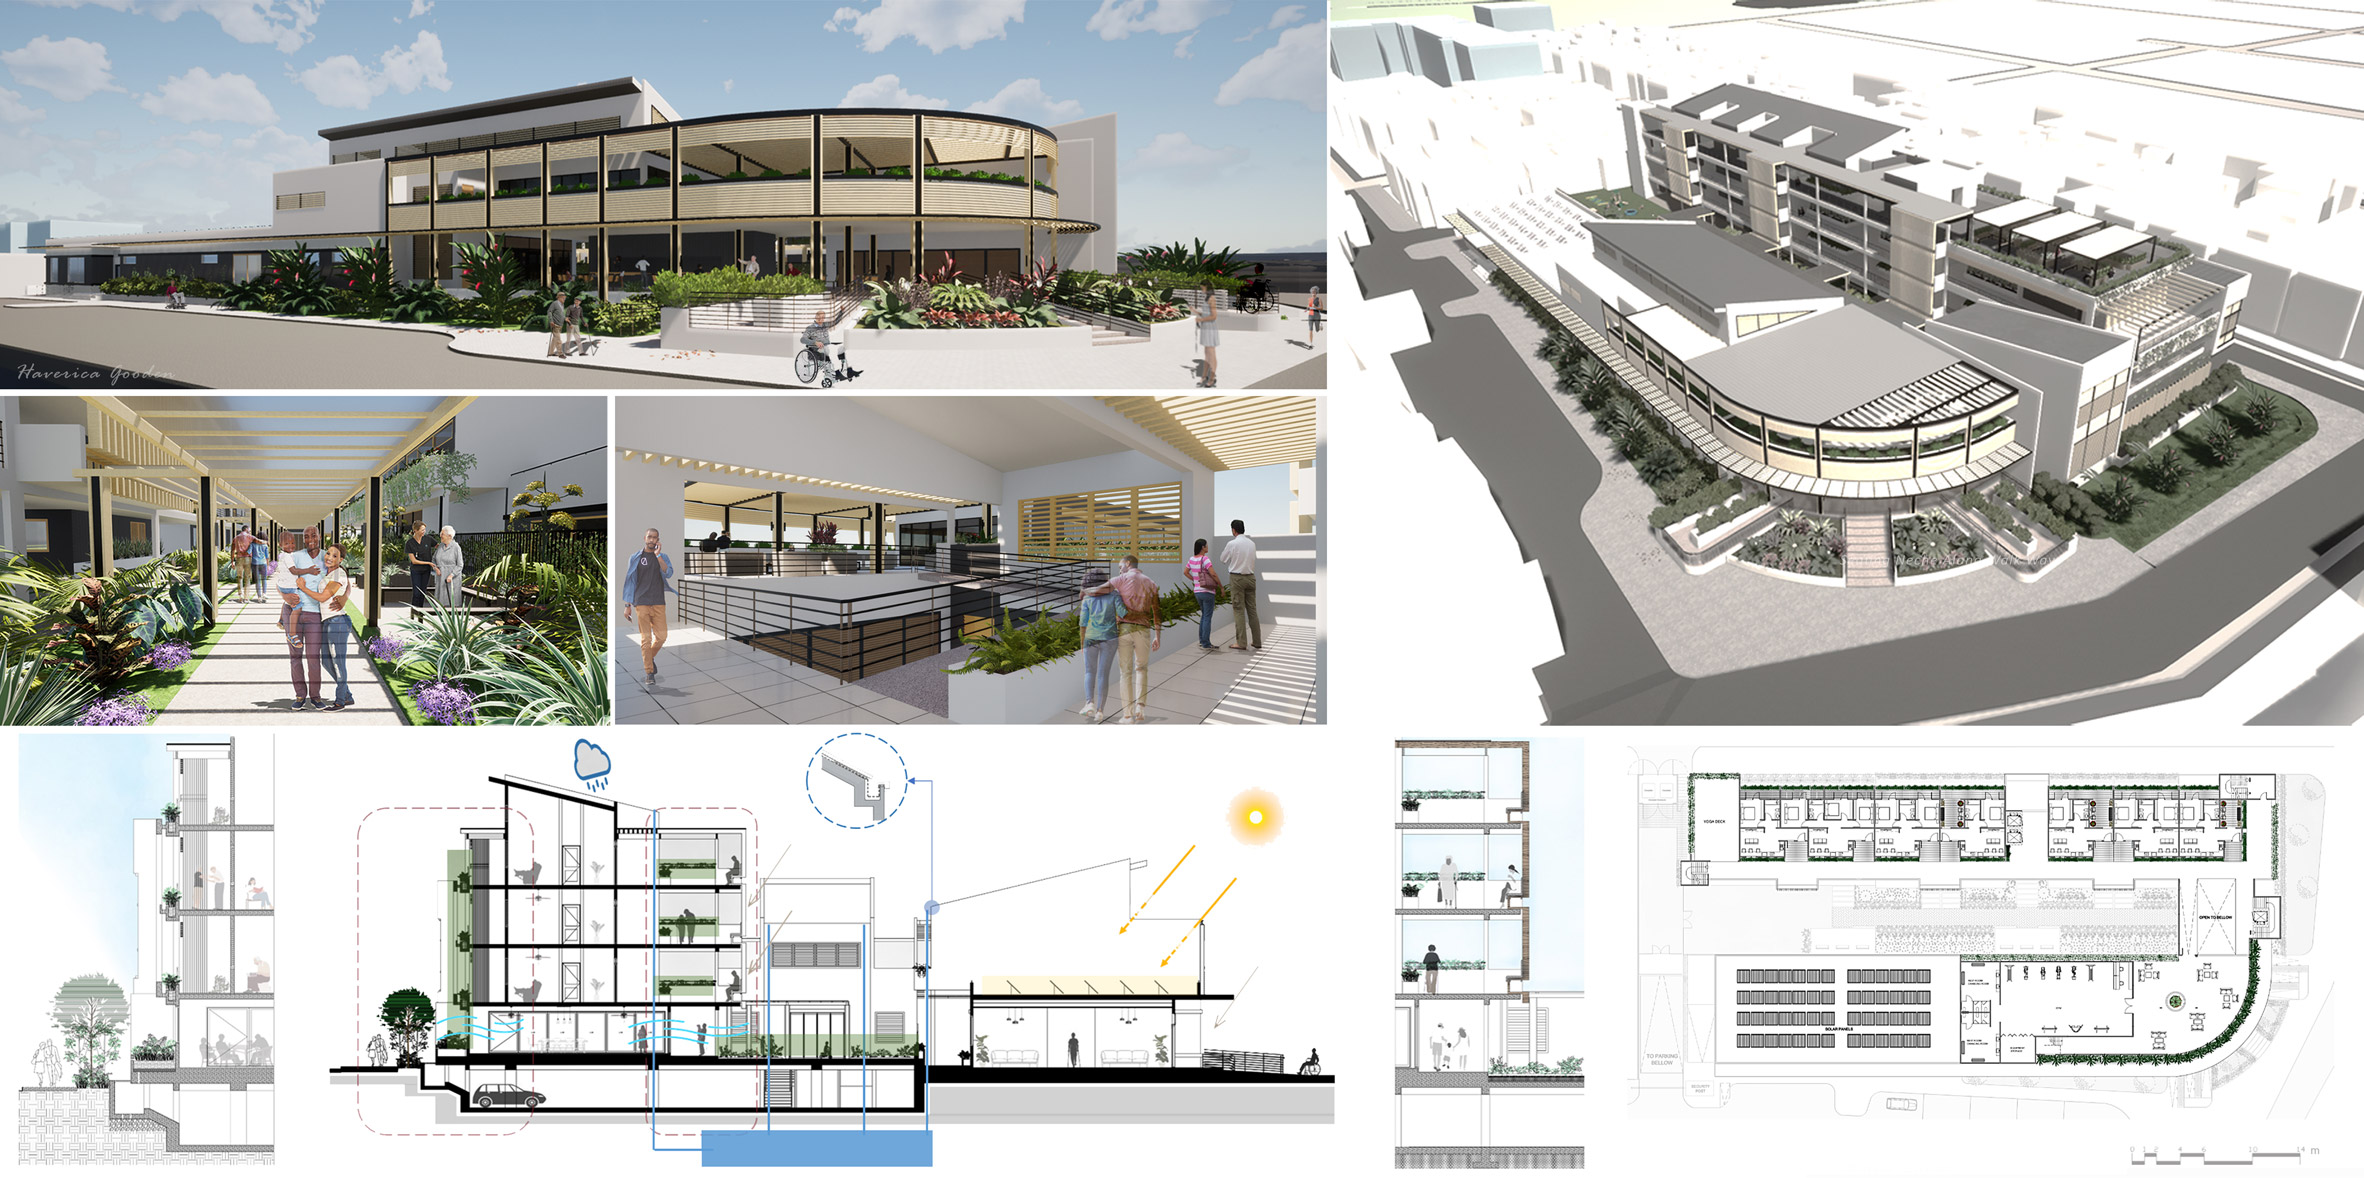 The projects are by architecture students from The University of Technology, Jamaica